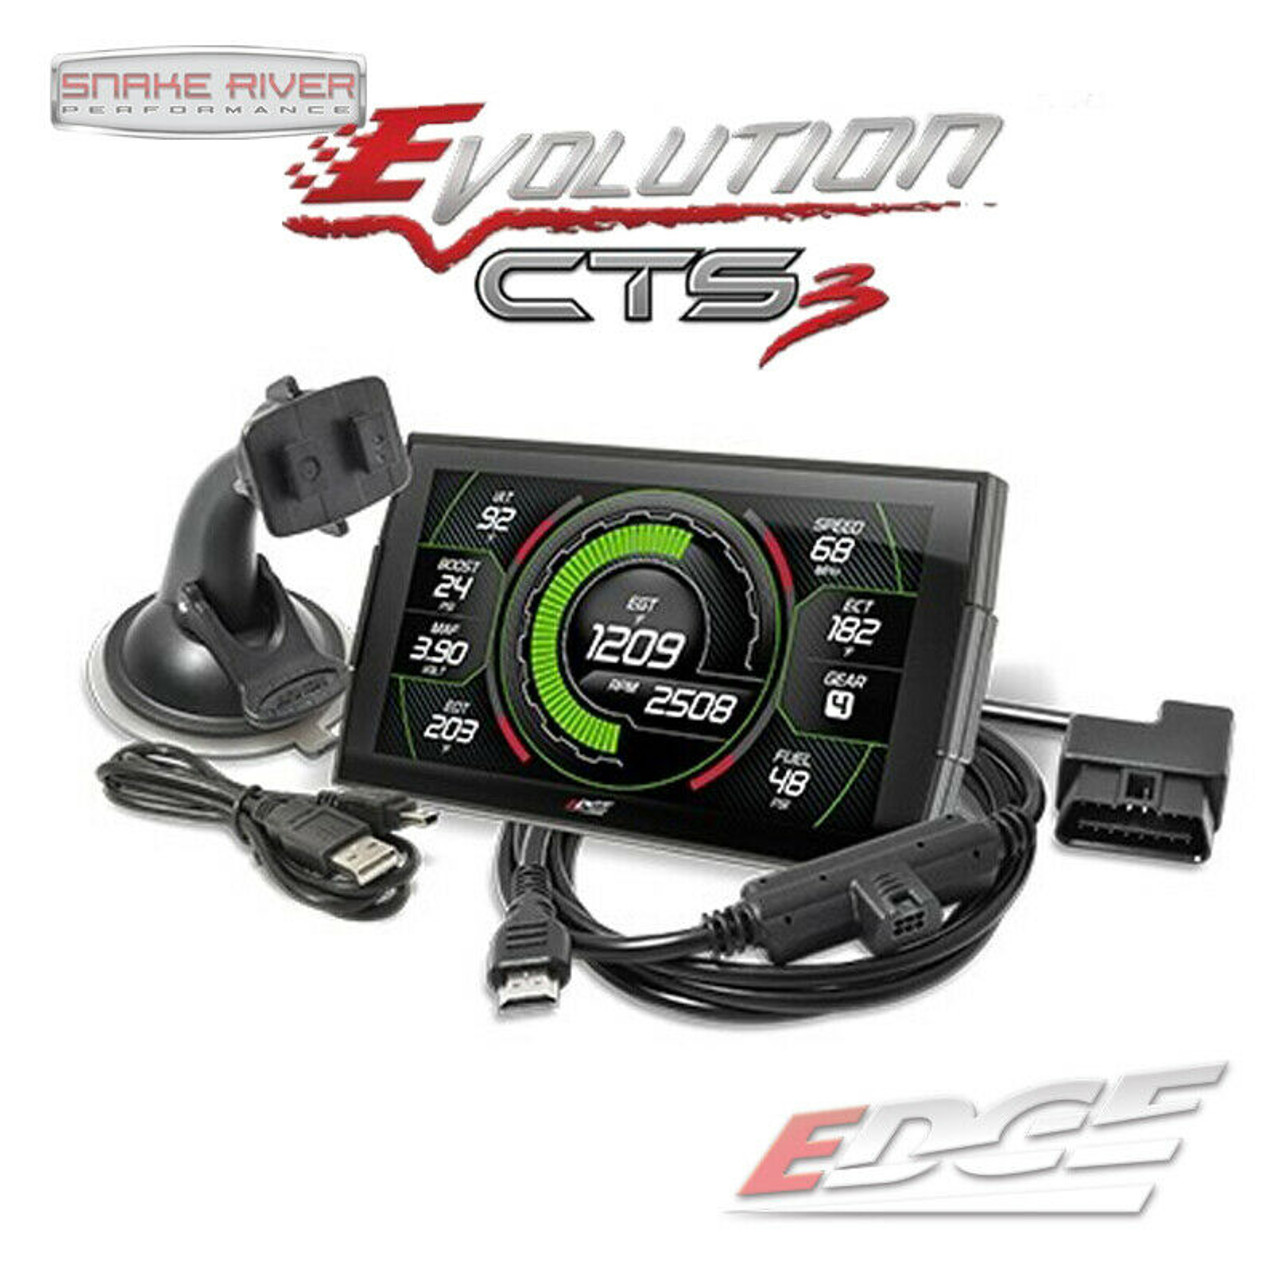 EDGE EVOLUTION CTS 3 TUNER FOR 2003-2014 DODGE RAM JEEP CHRYSLER GAS VEHICLES